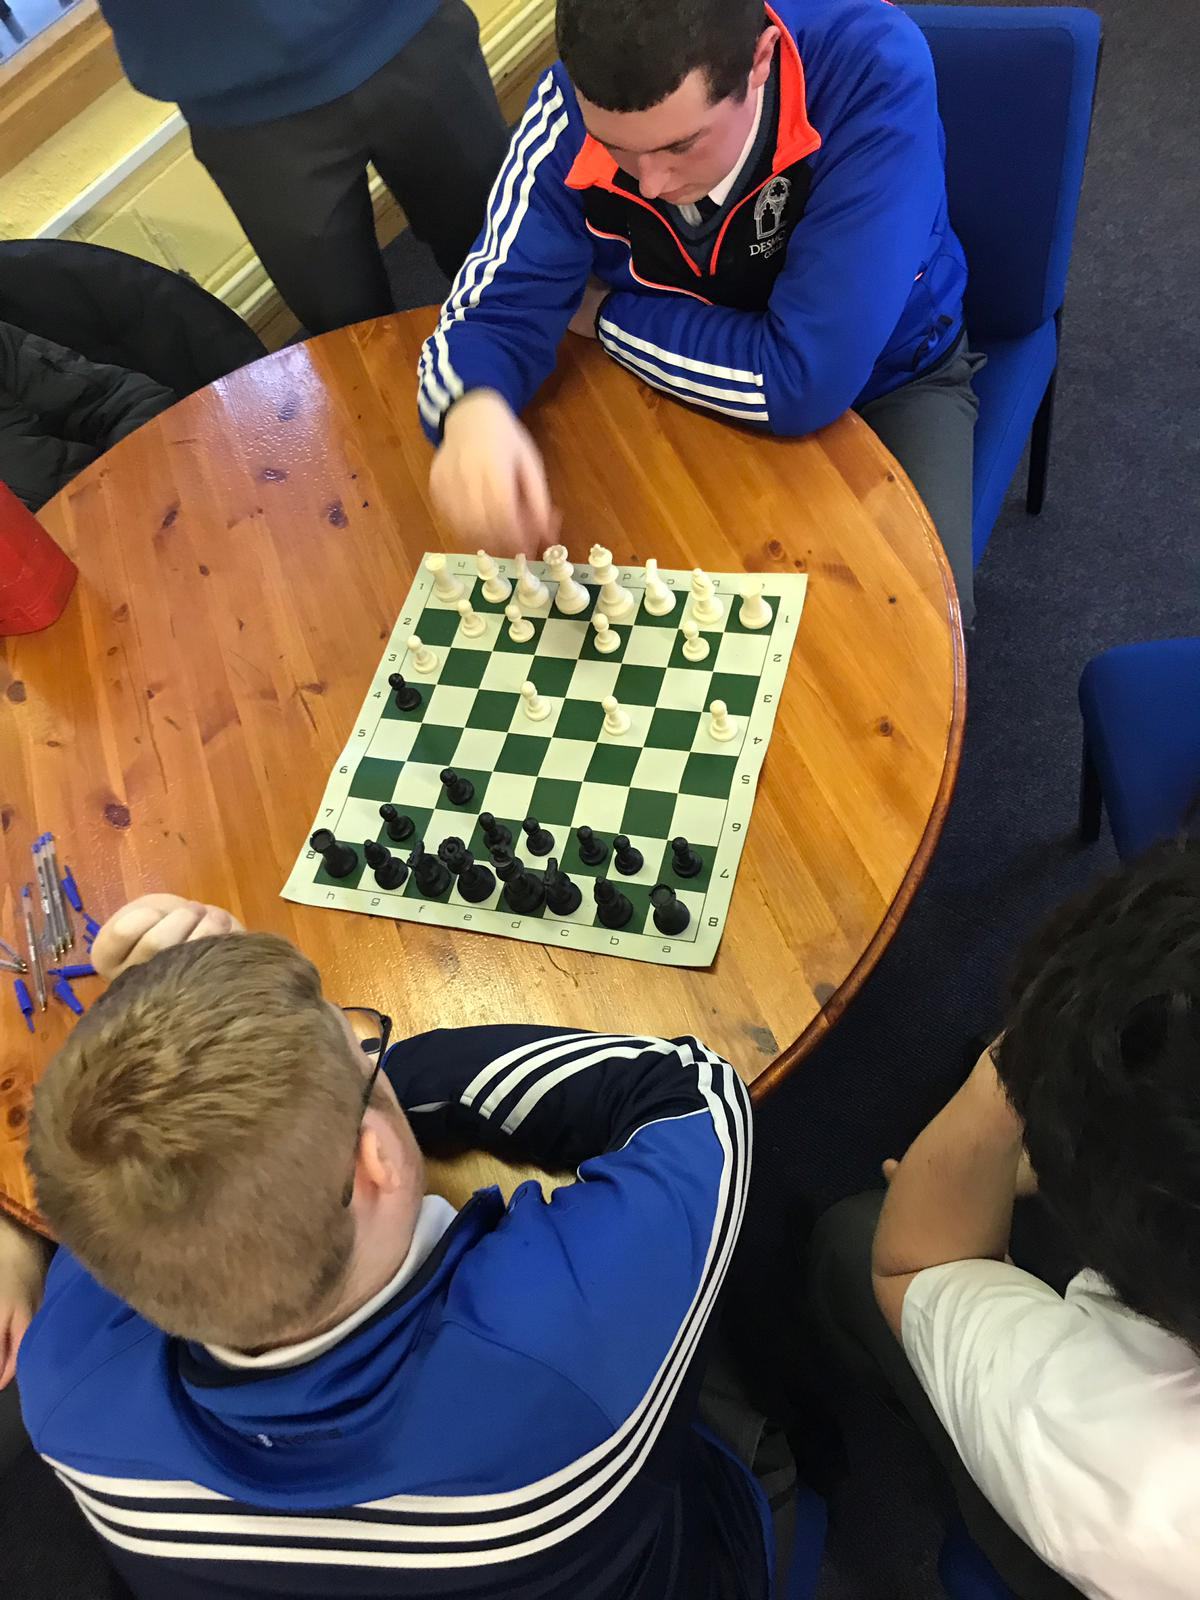 Evan Condon and AJ Dee enjoying a chess game at lunchtime